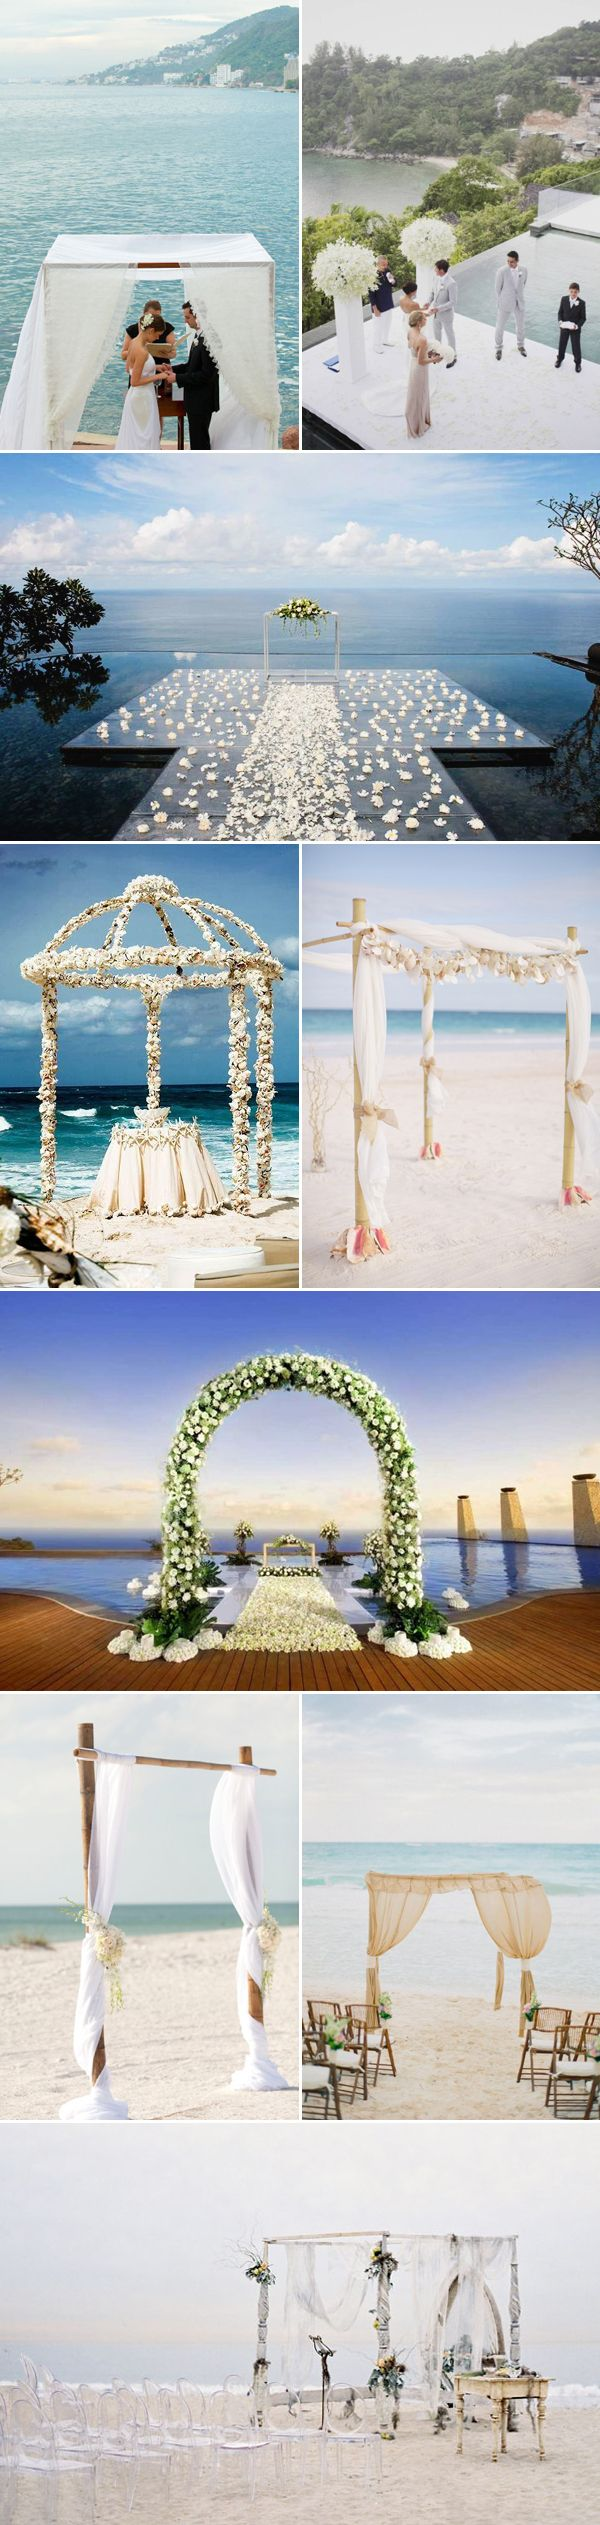 Wedding decorations in zambia november 2018  best Dream Wedding images on Pinterest  Diamond stacking rings